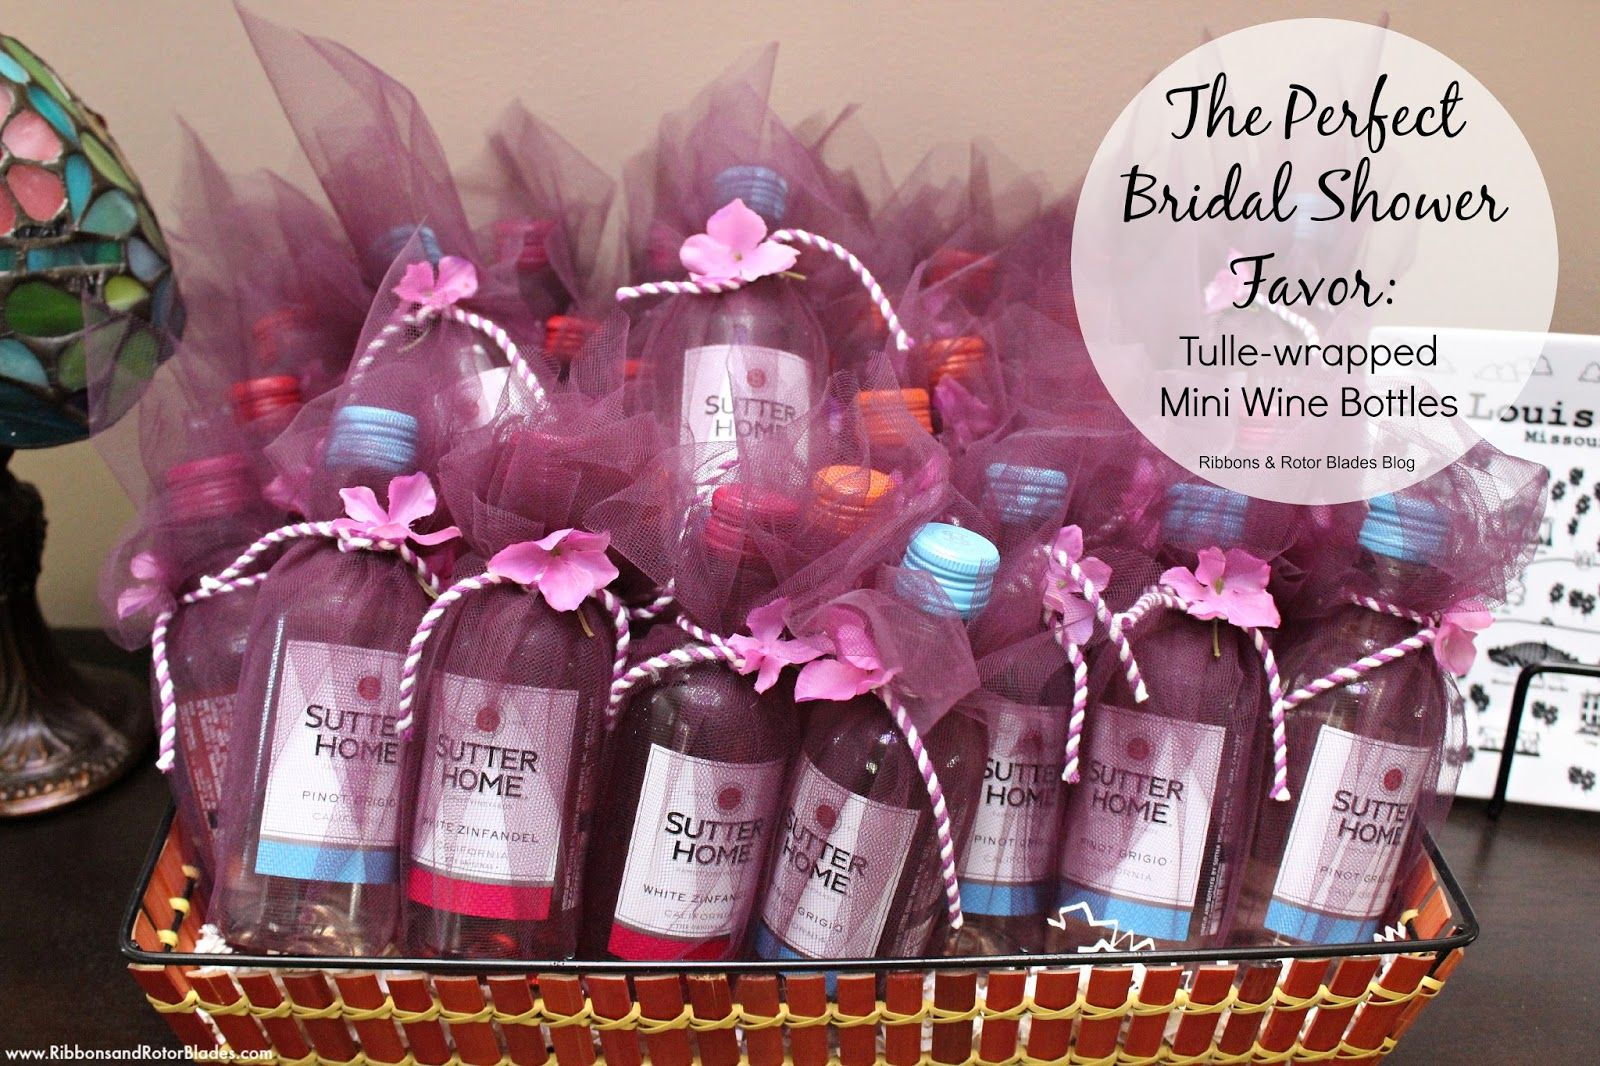 Kitchen Tea Themes These Bridal Shower Favors Were A Hit Description From